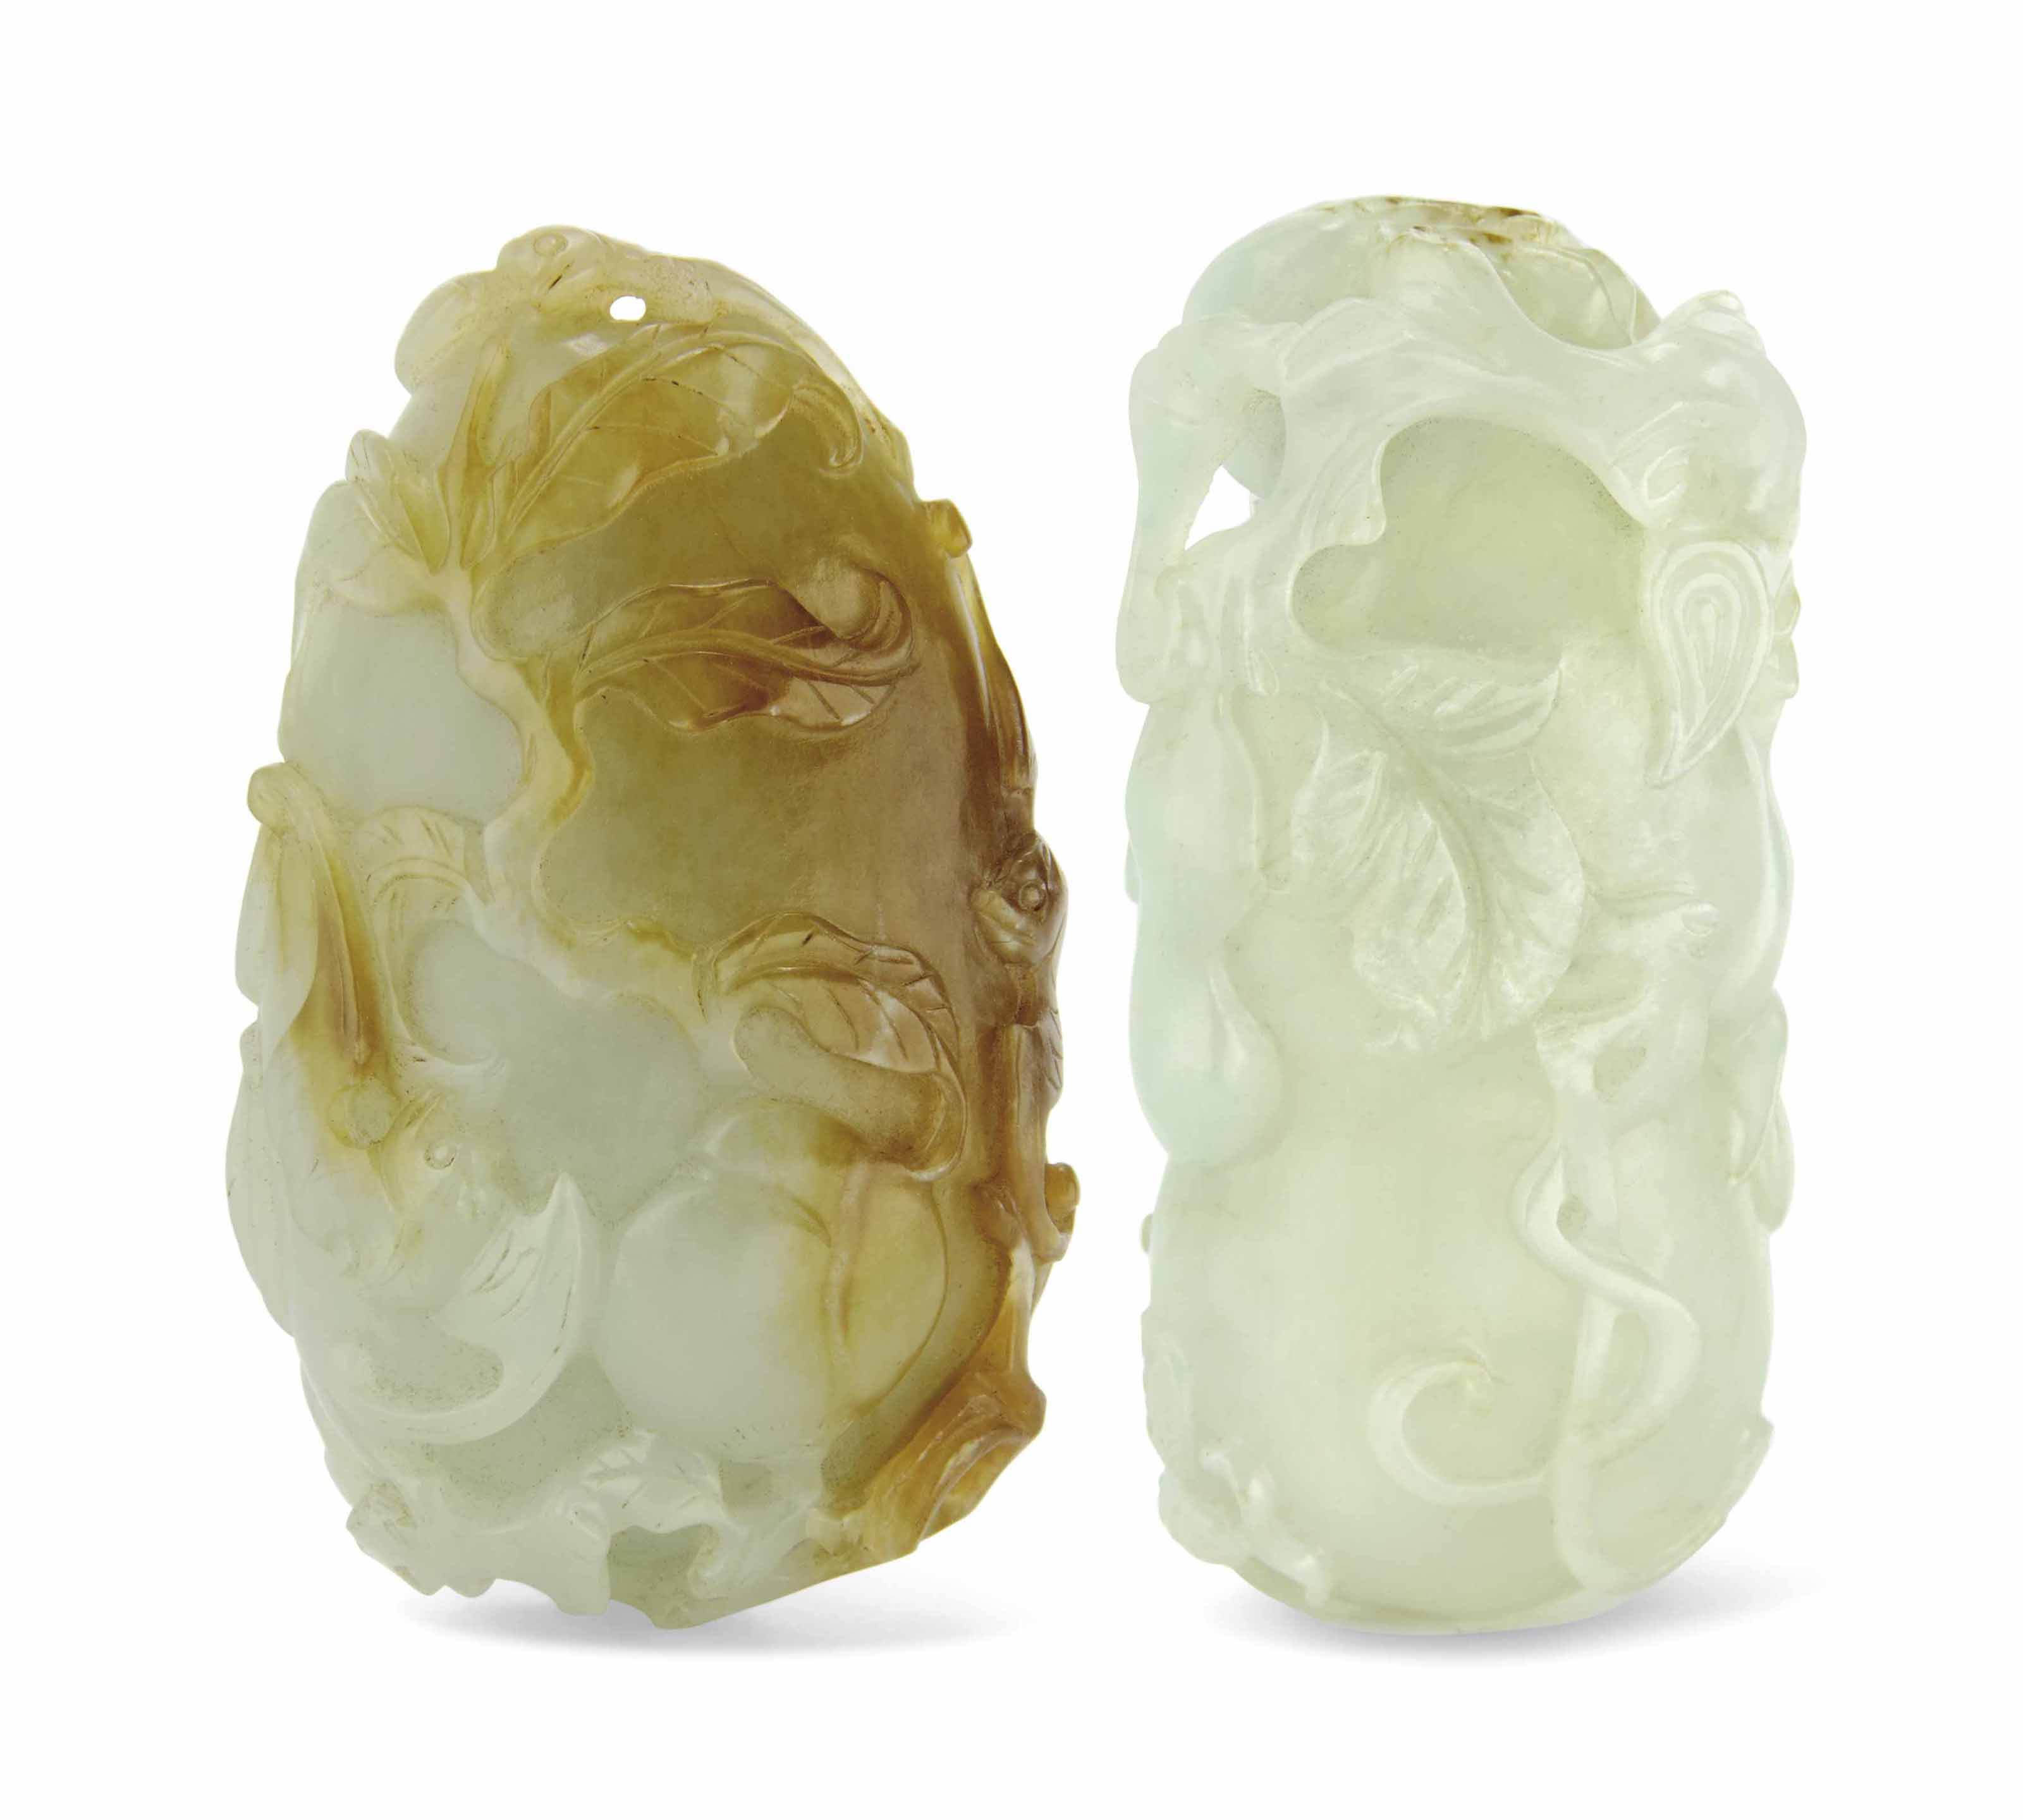 TWO WHITE AND RUSSET JADE CARVINGS